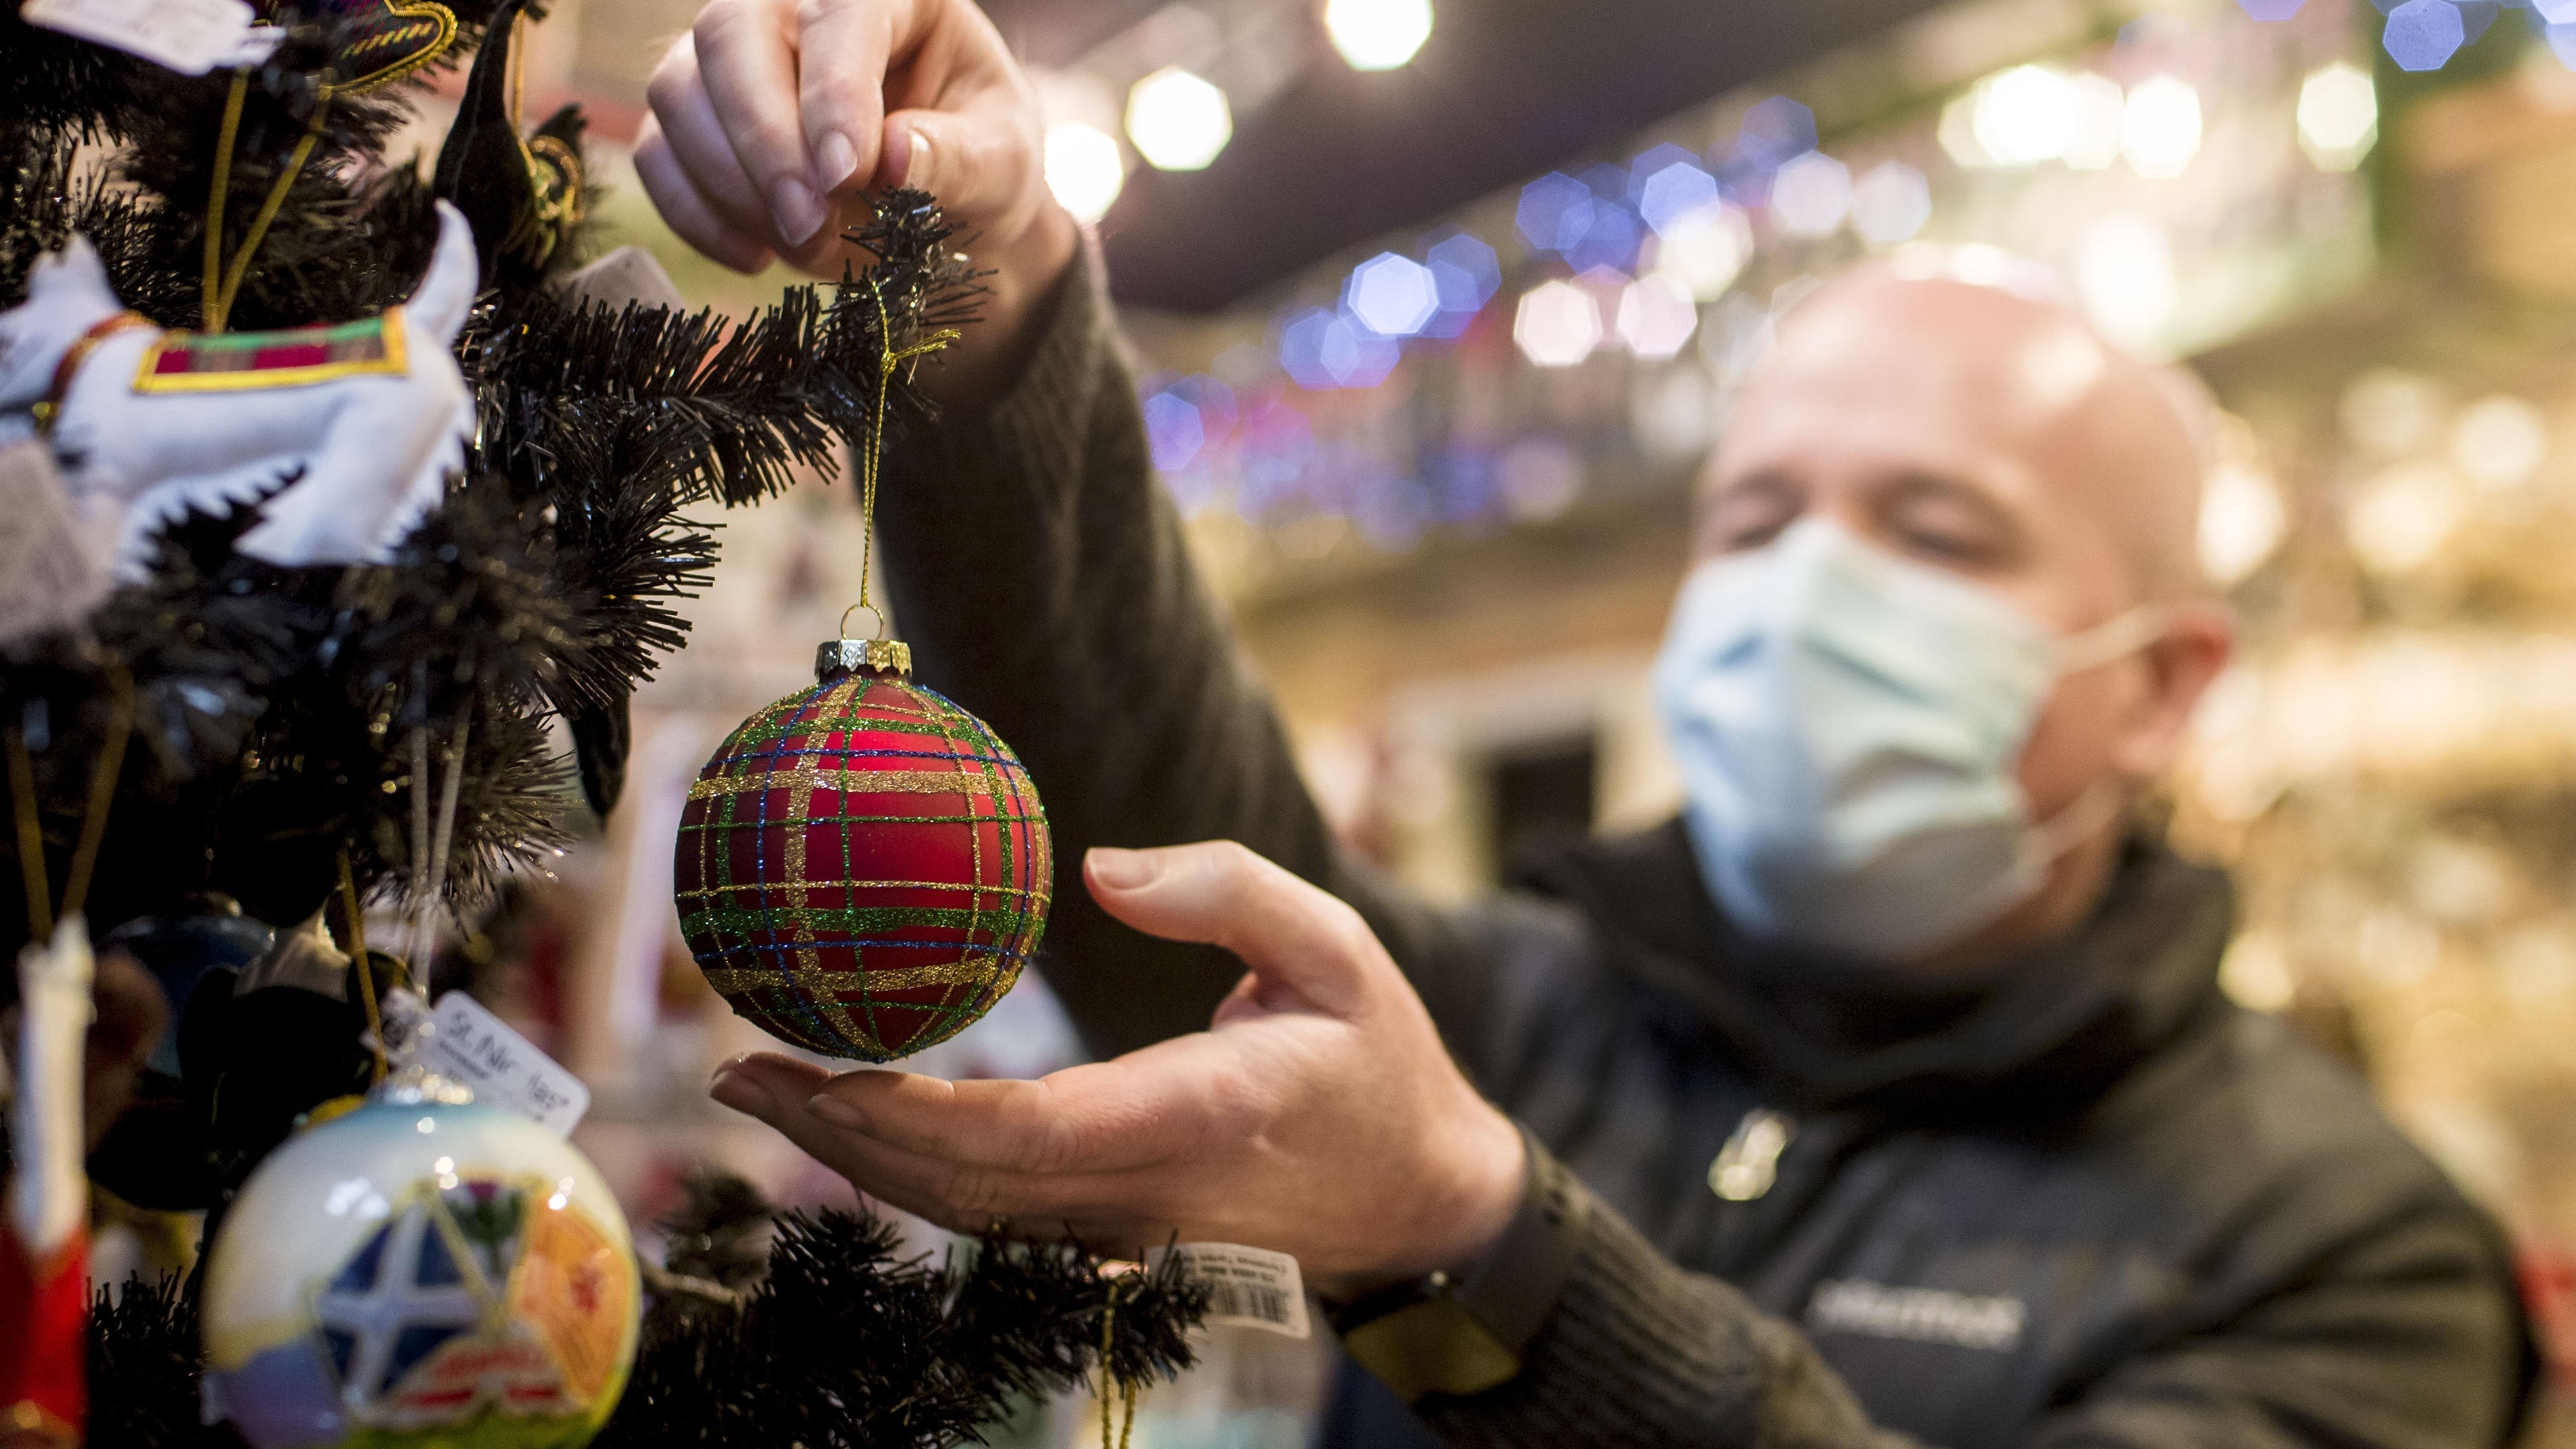 Chris Smyth owner of Ye Olde Christmas Shoppe in Edinburgh hangs a decoration on a Christmas tree in his shop, as Mr Leitch said people should